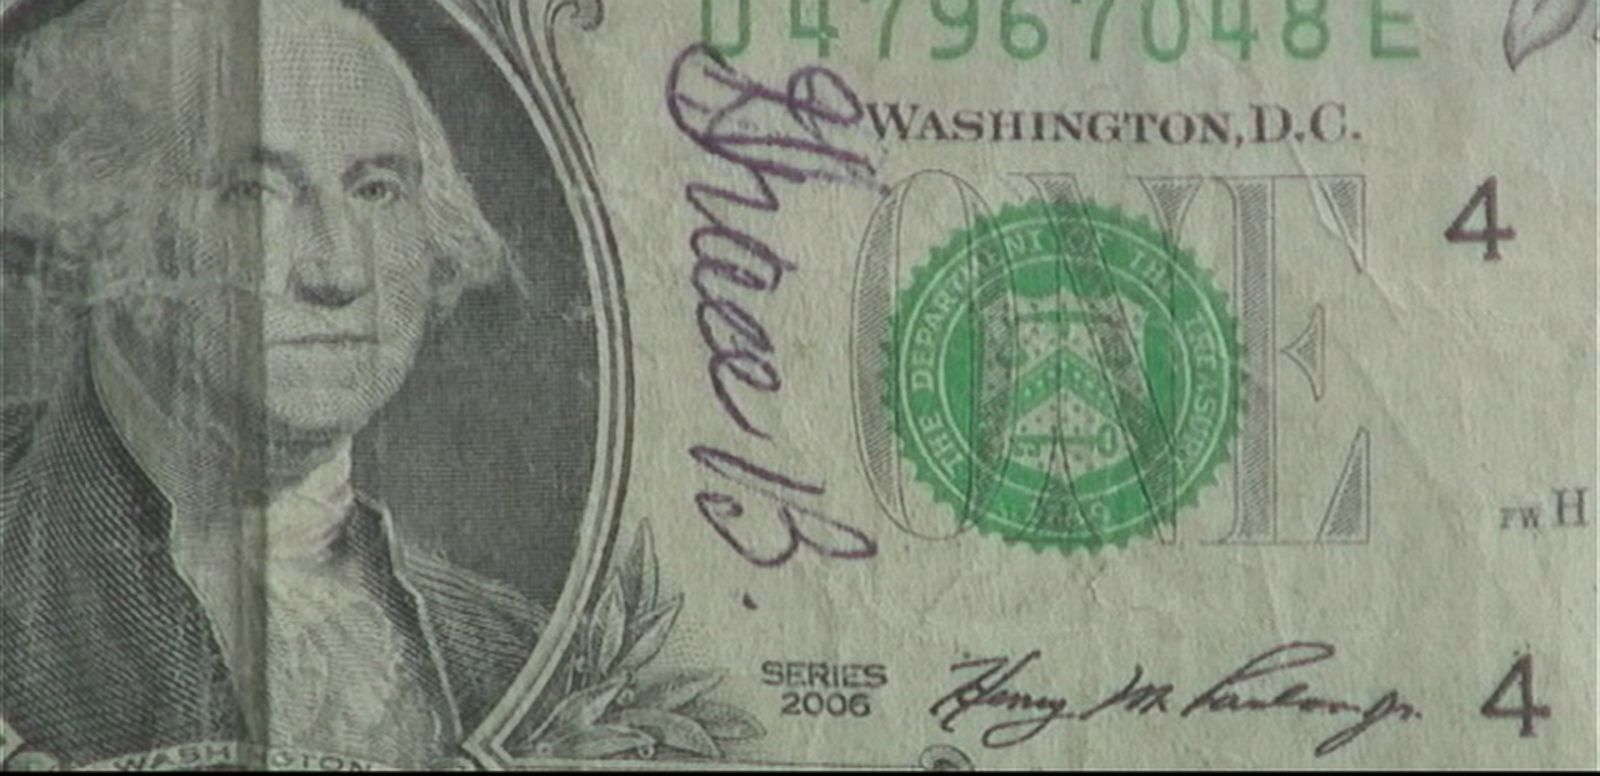 VIDEO: Peter Bilello accidentally spent a dollar bill bearing his wife's signature, but was reunited with the precious currency five years later at a Subway restaurant.